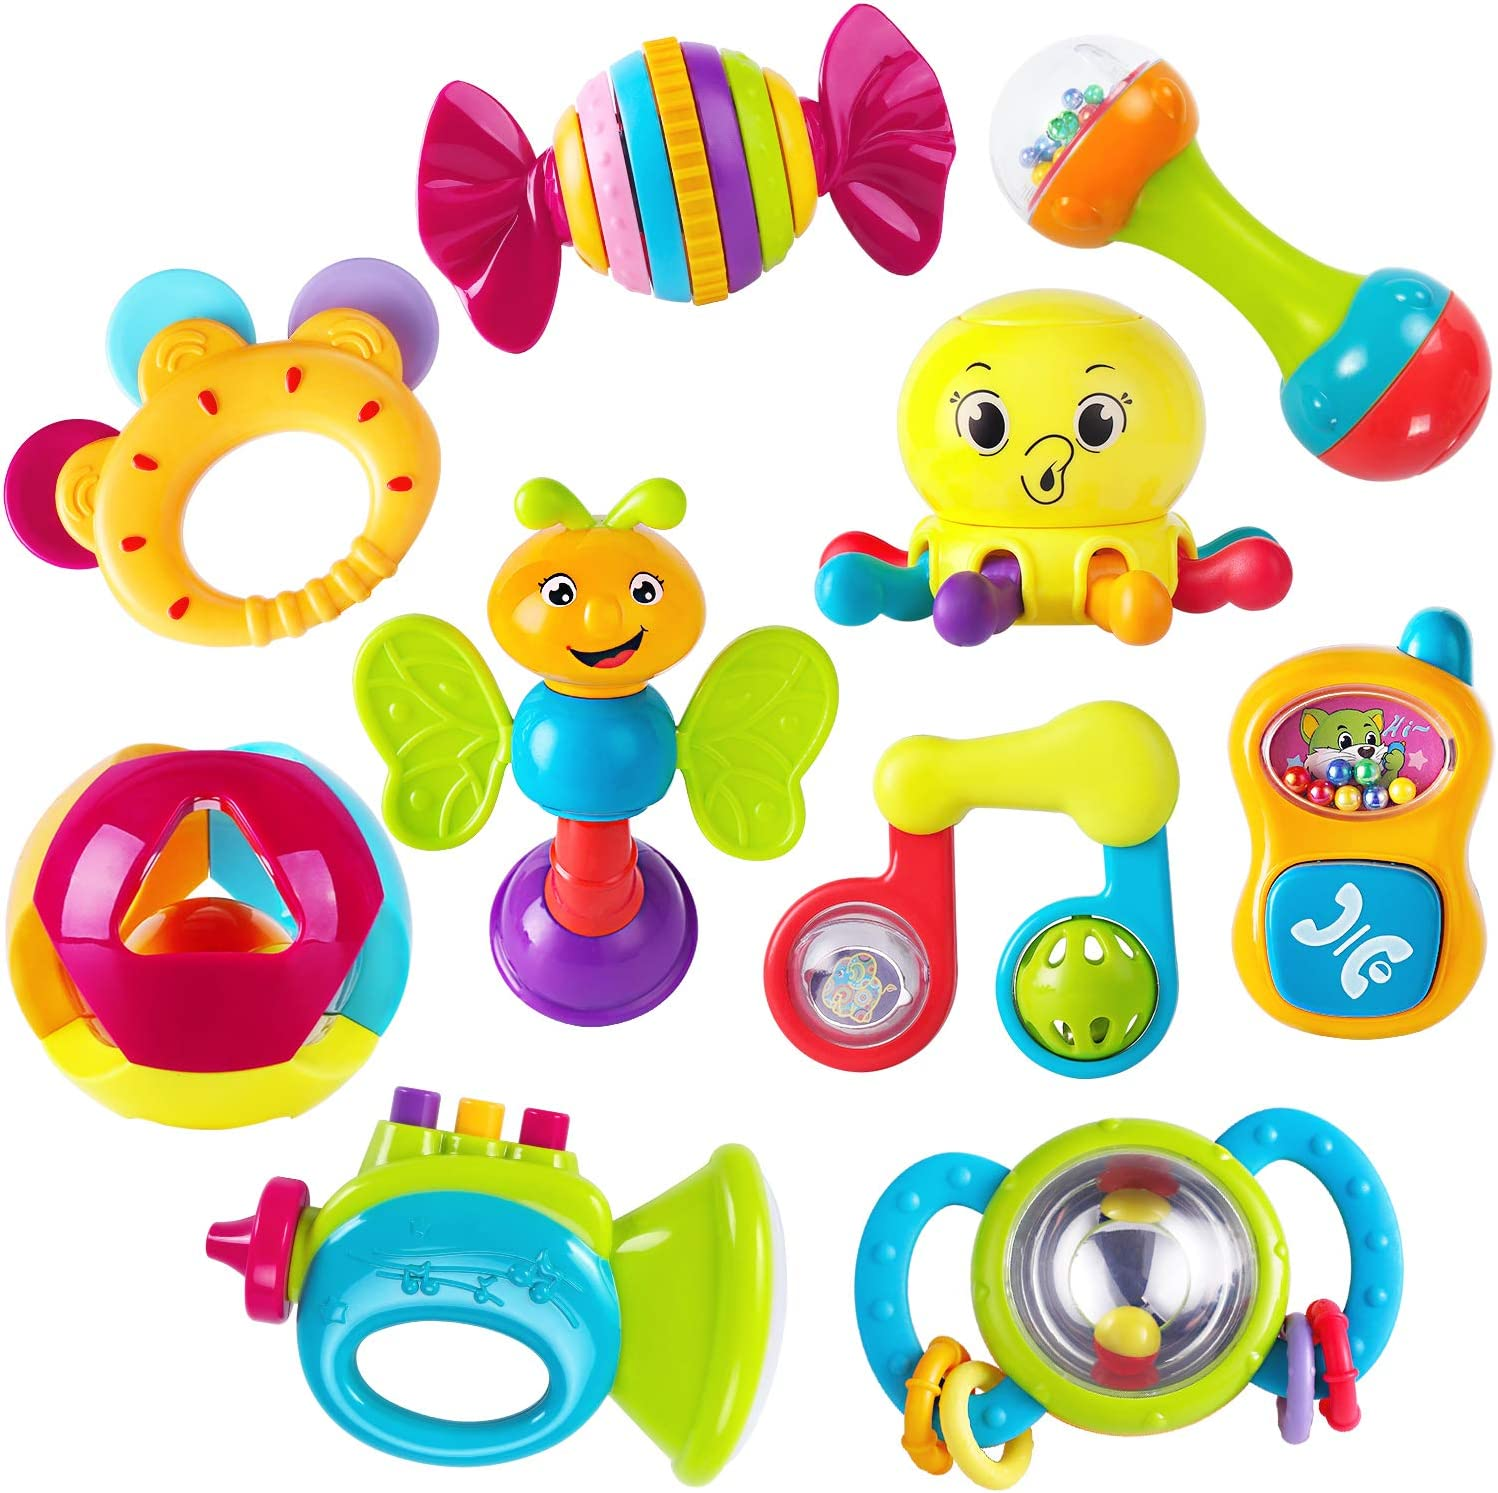 Amazon Com Iplay Ilearn 10pcs Baby Rattles Teether Shaker Grab And Spin Rattle Musical Toy Set Early Educational Toys For 3 6 9 12 Month Baby Infant Newborn Toys Games